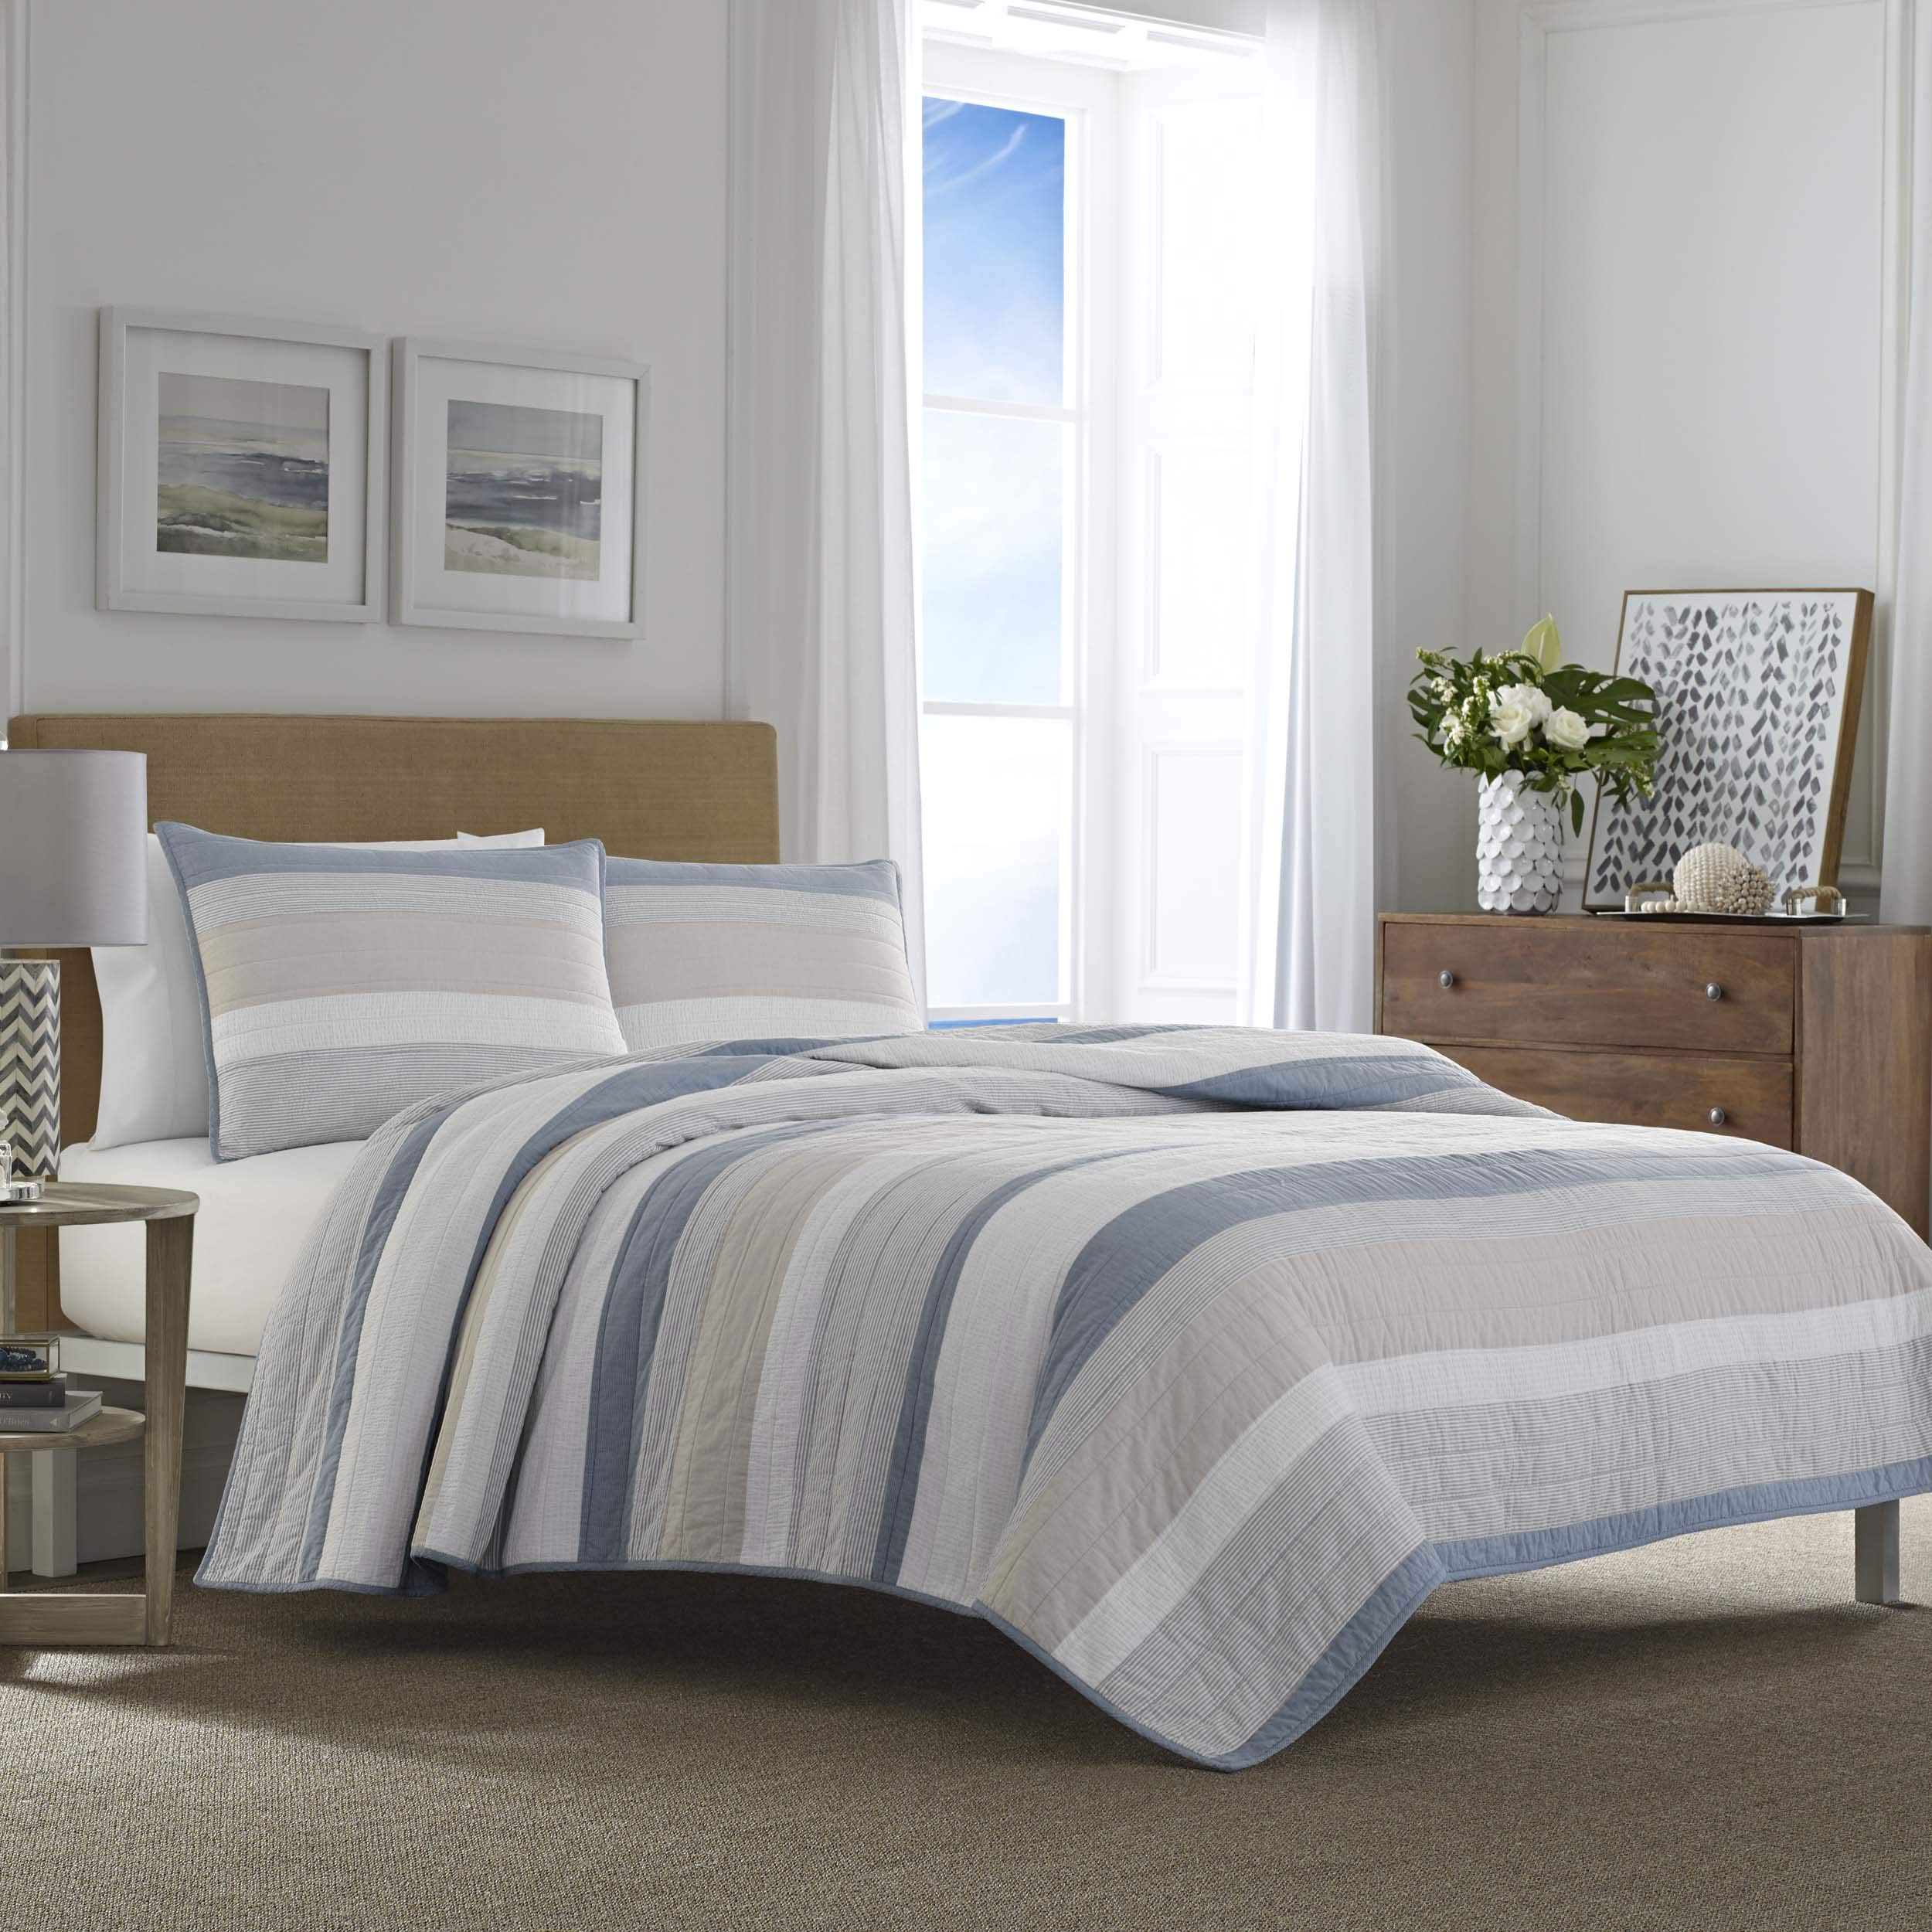 Nautica Terry Cove Quilt King Beige